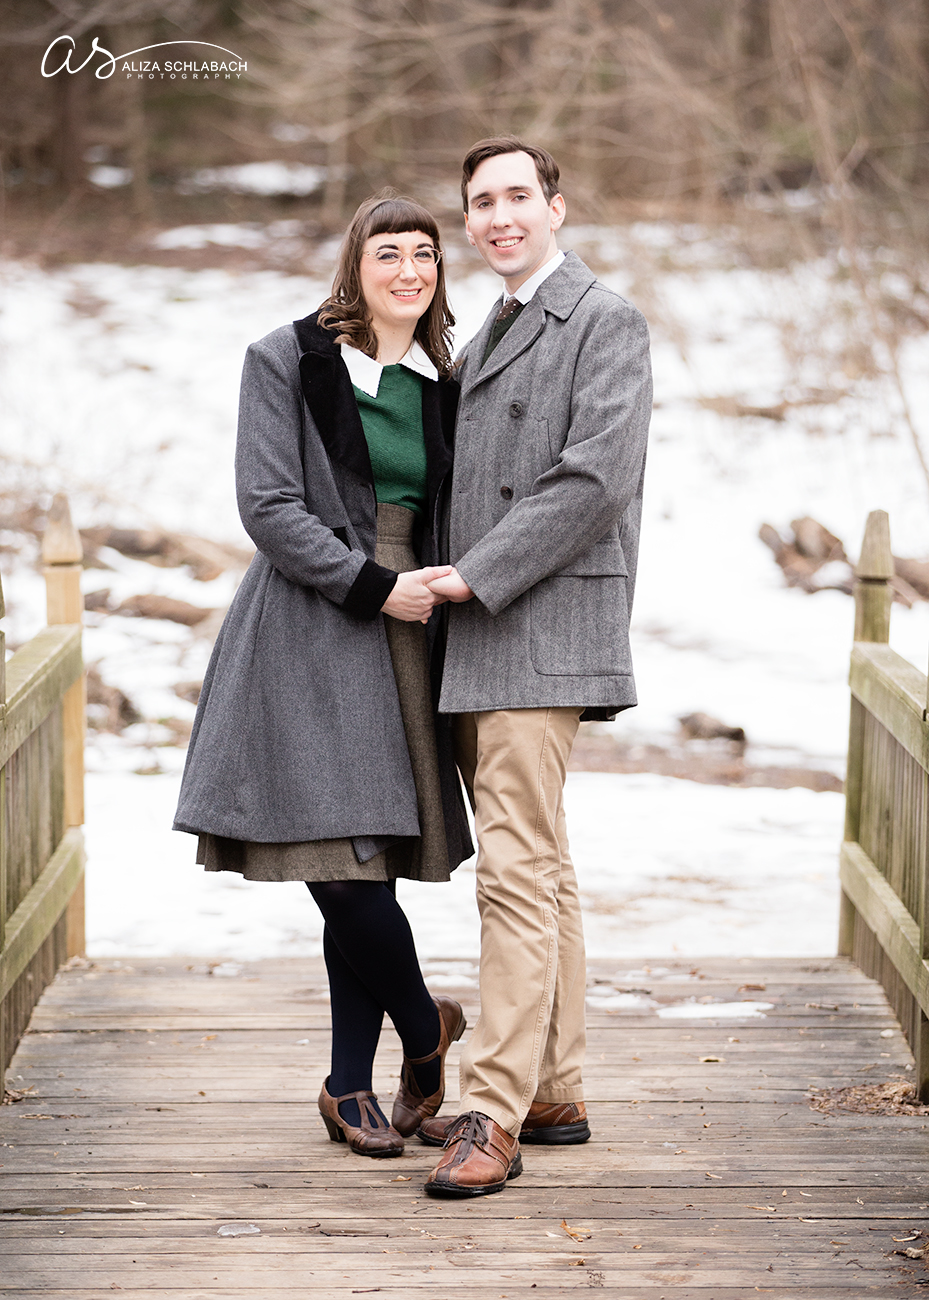 photo | on a bridge | engagement portrait at Haverford College in winter